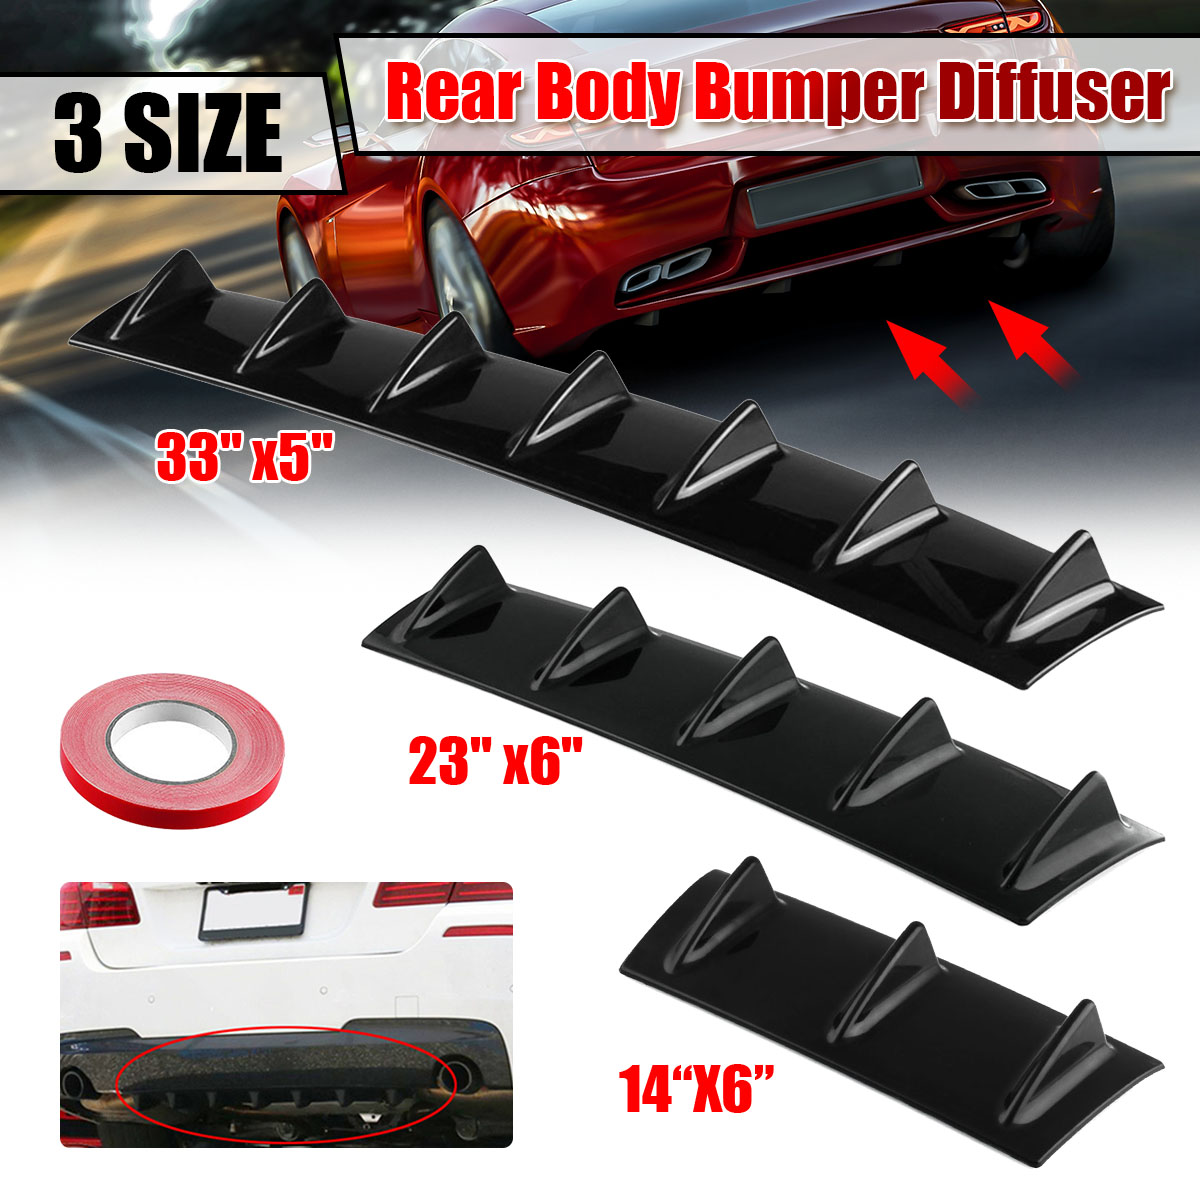 Gloss Black Universal Car Rear Bumper Diffuser Splitter Shark 3 5 7Fin Kit Rear Bumper Lip Spoiler For Honda For Toyota For Benz